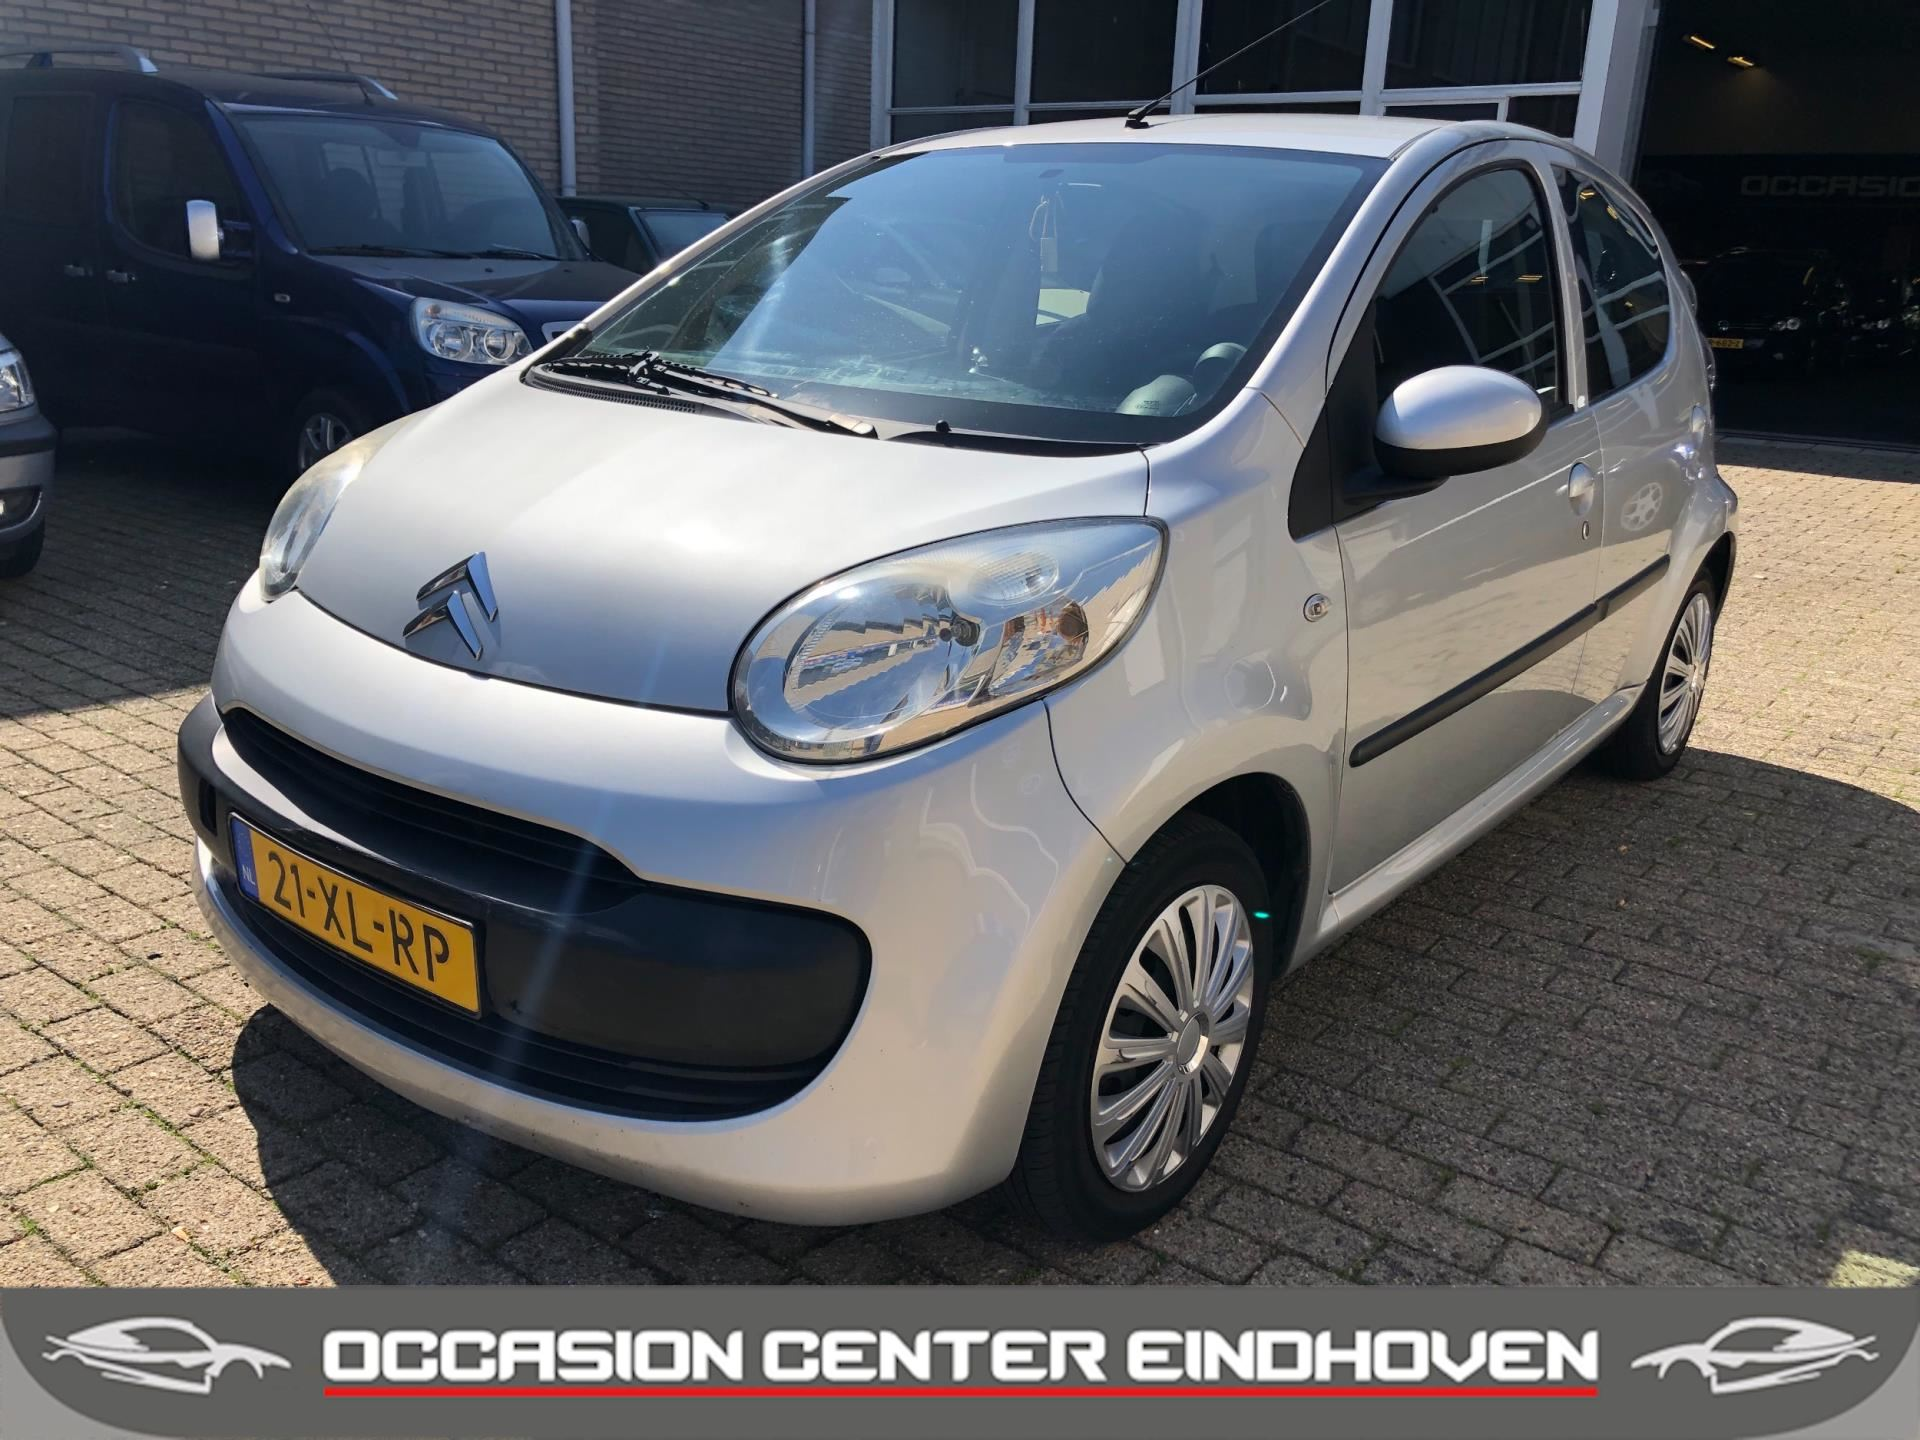 Citroen C1 occasion - Occasion Center Eindhoven